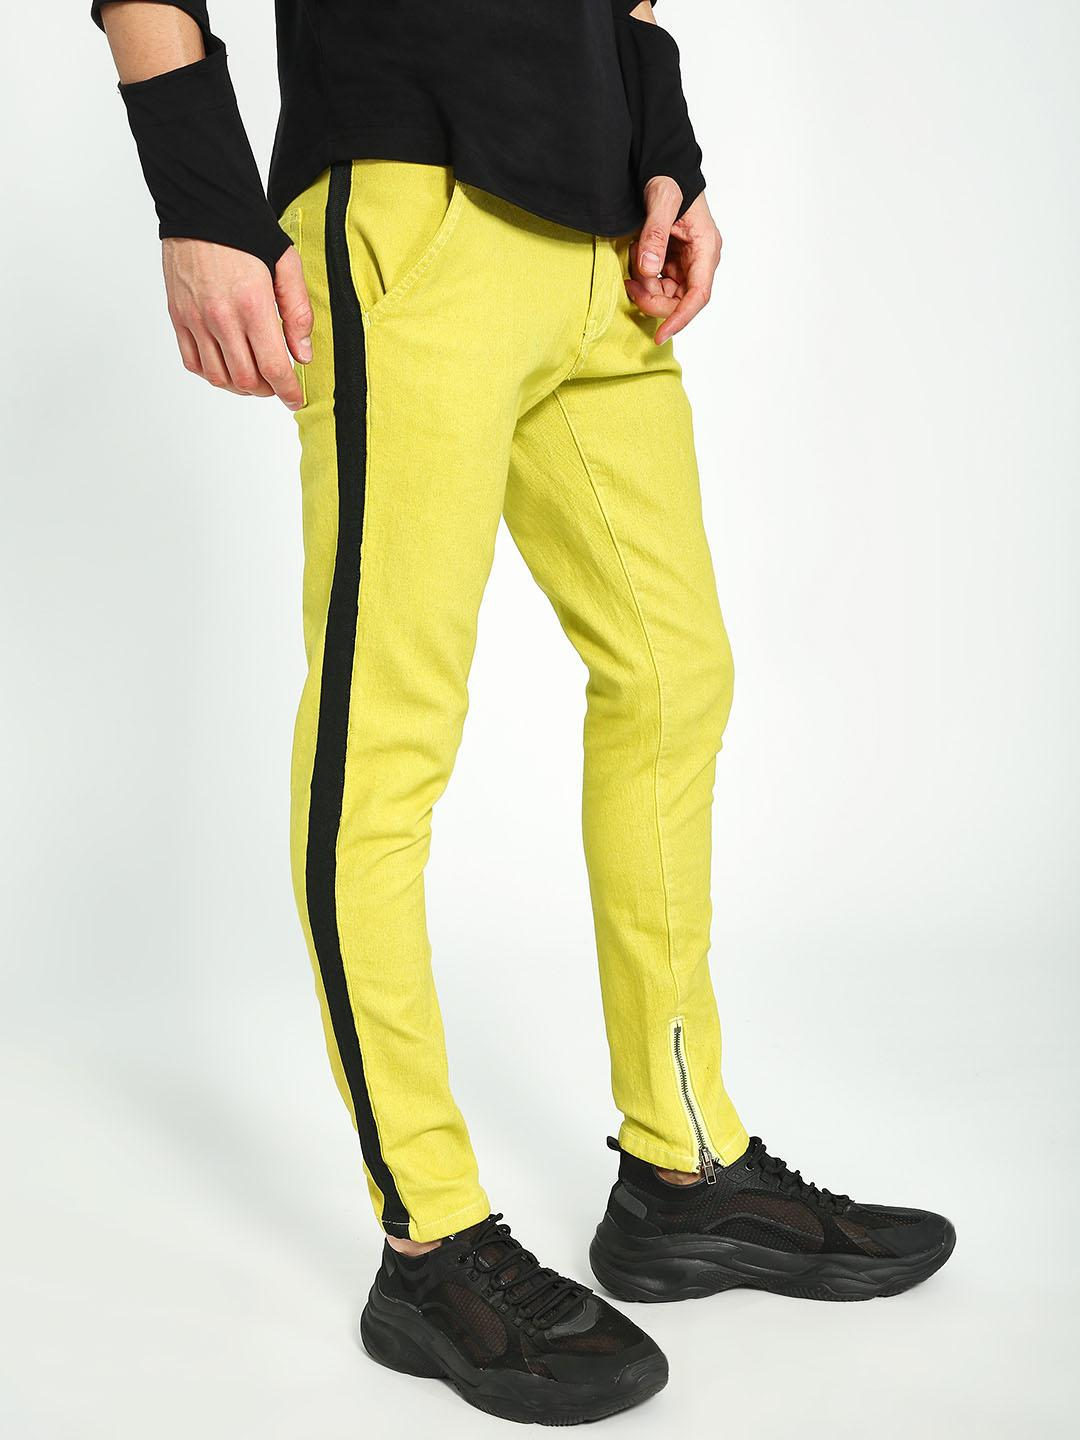 Kultprit Yellow Side Tape Zippered Hem Skinny Jeans 1